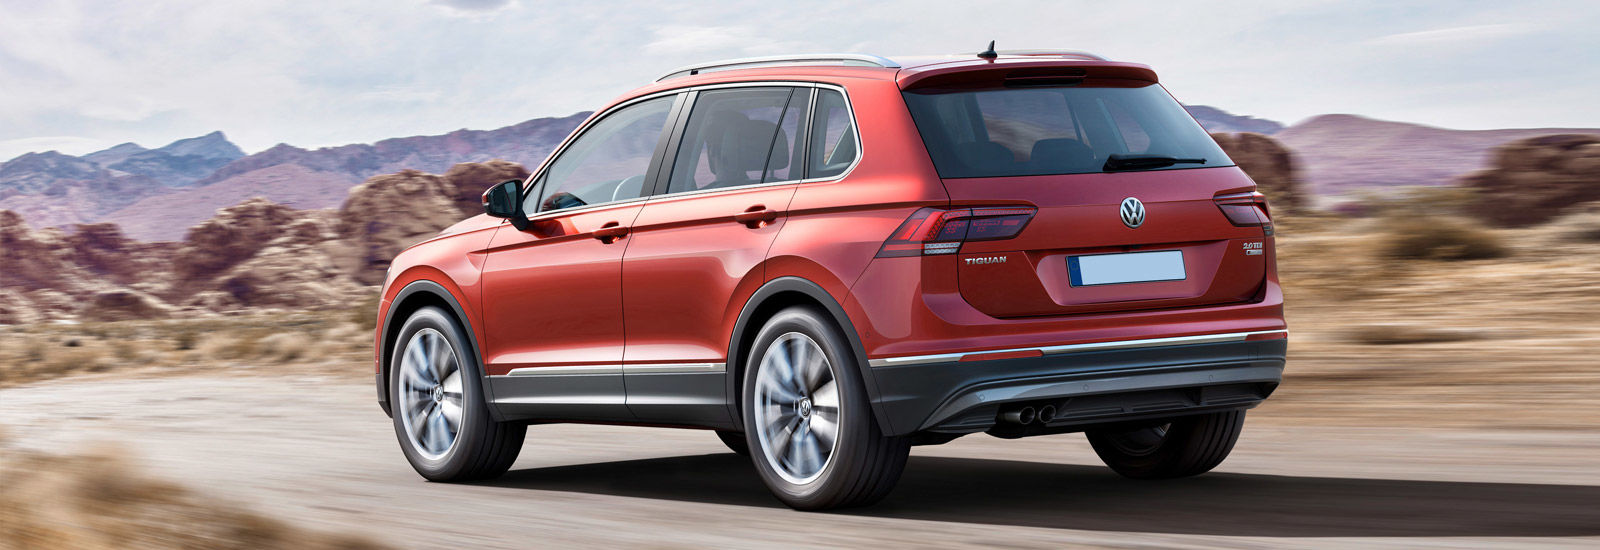 All Types tiguan length : VW Tiguan size and dimensions guide | carwow